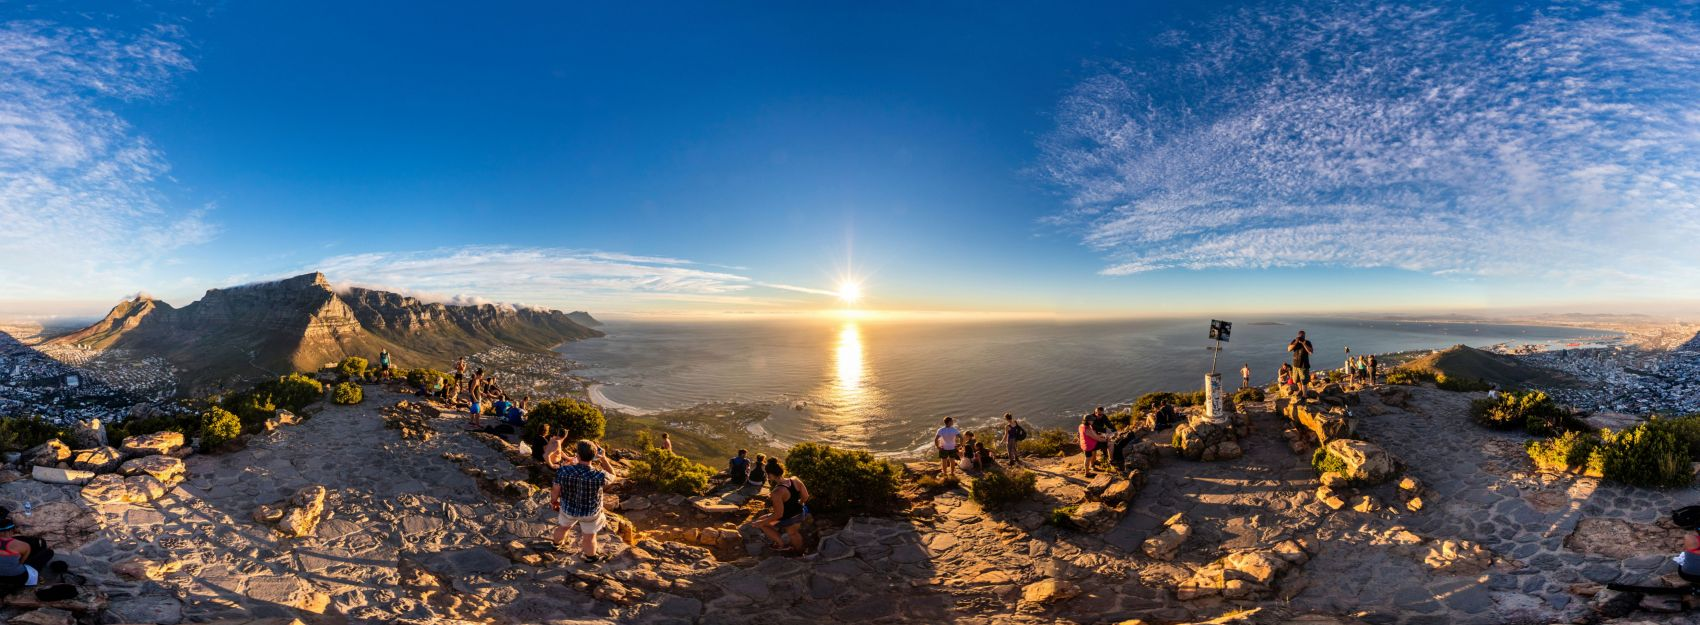 Panorama of Lion's Head in Cape Town